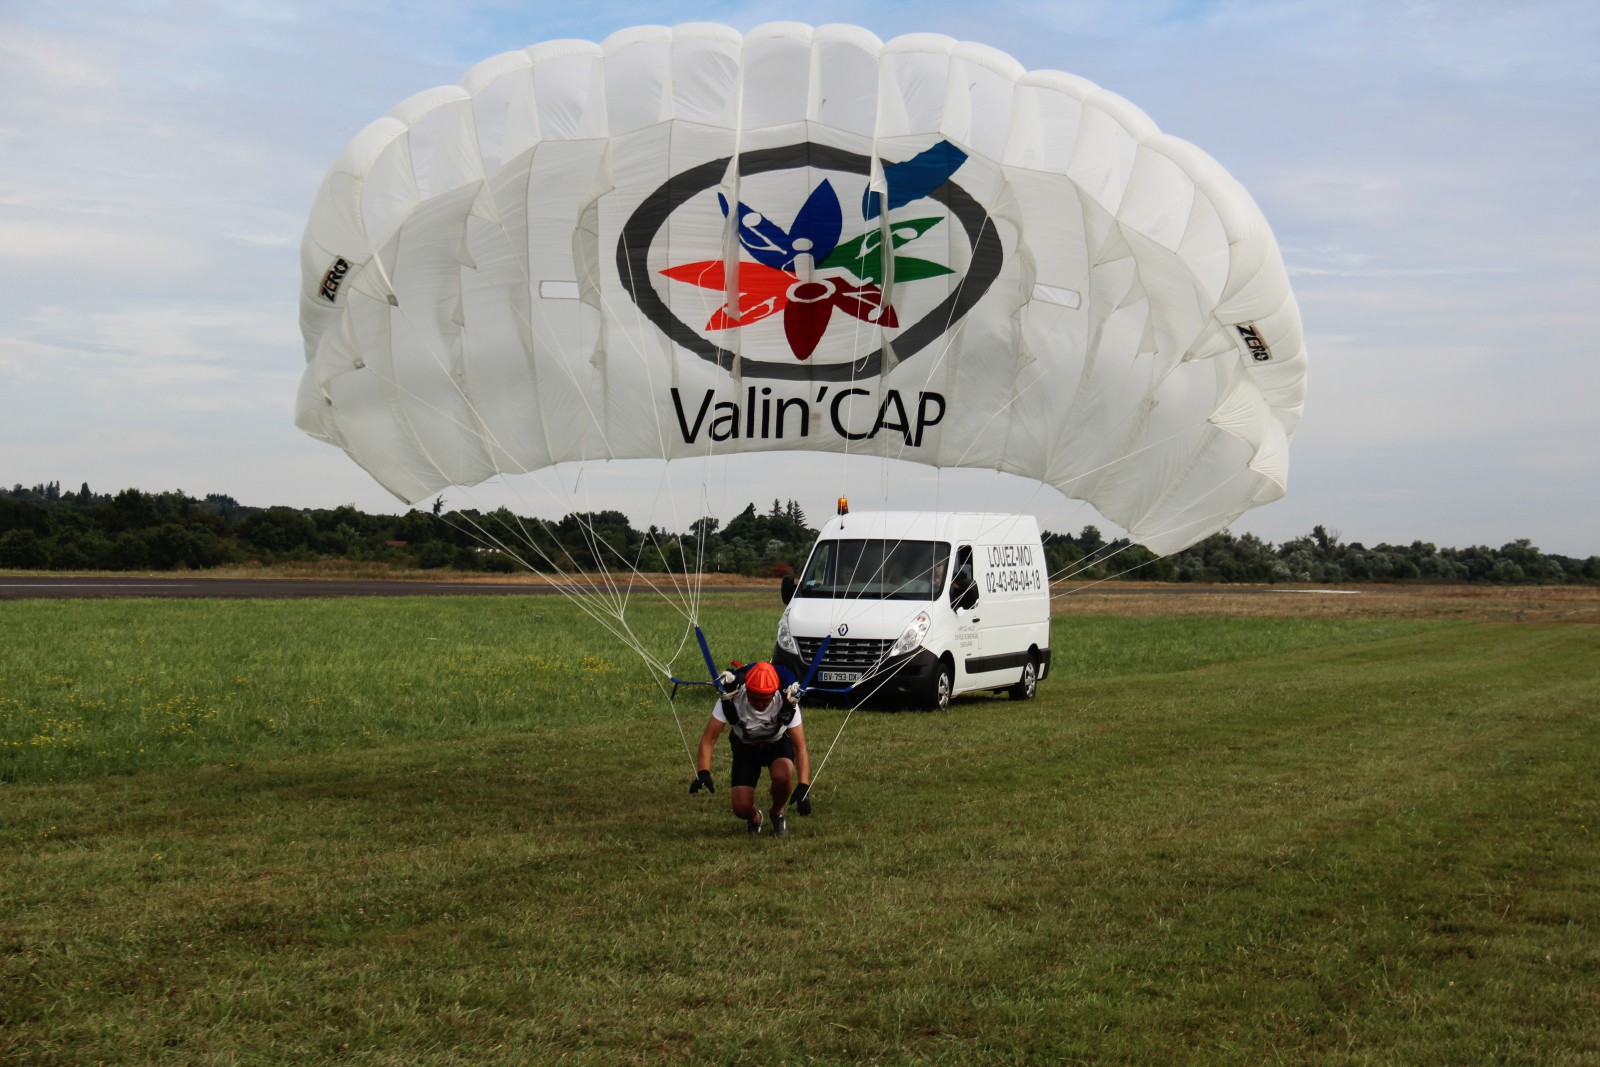 Xavier De Sailly Valin'cap - Champ France Vichy FFP 2016 (25)